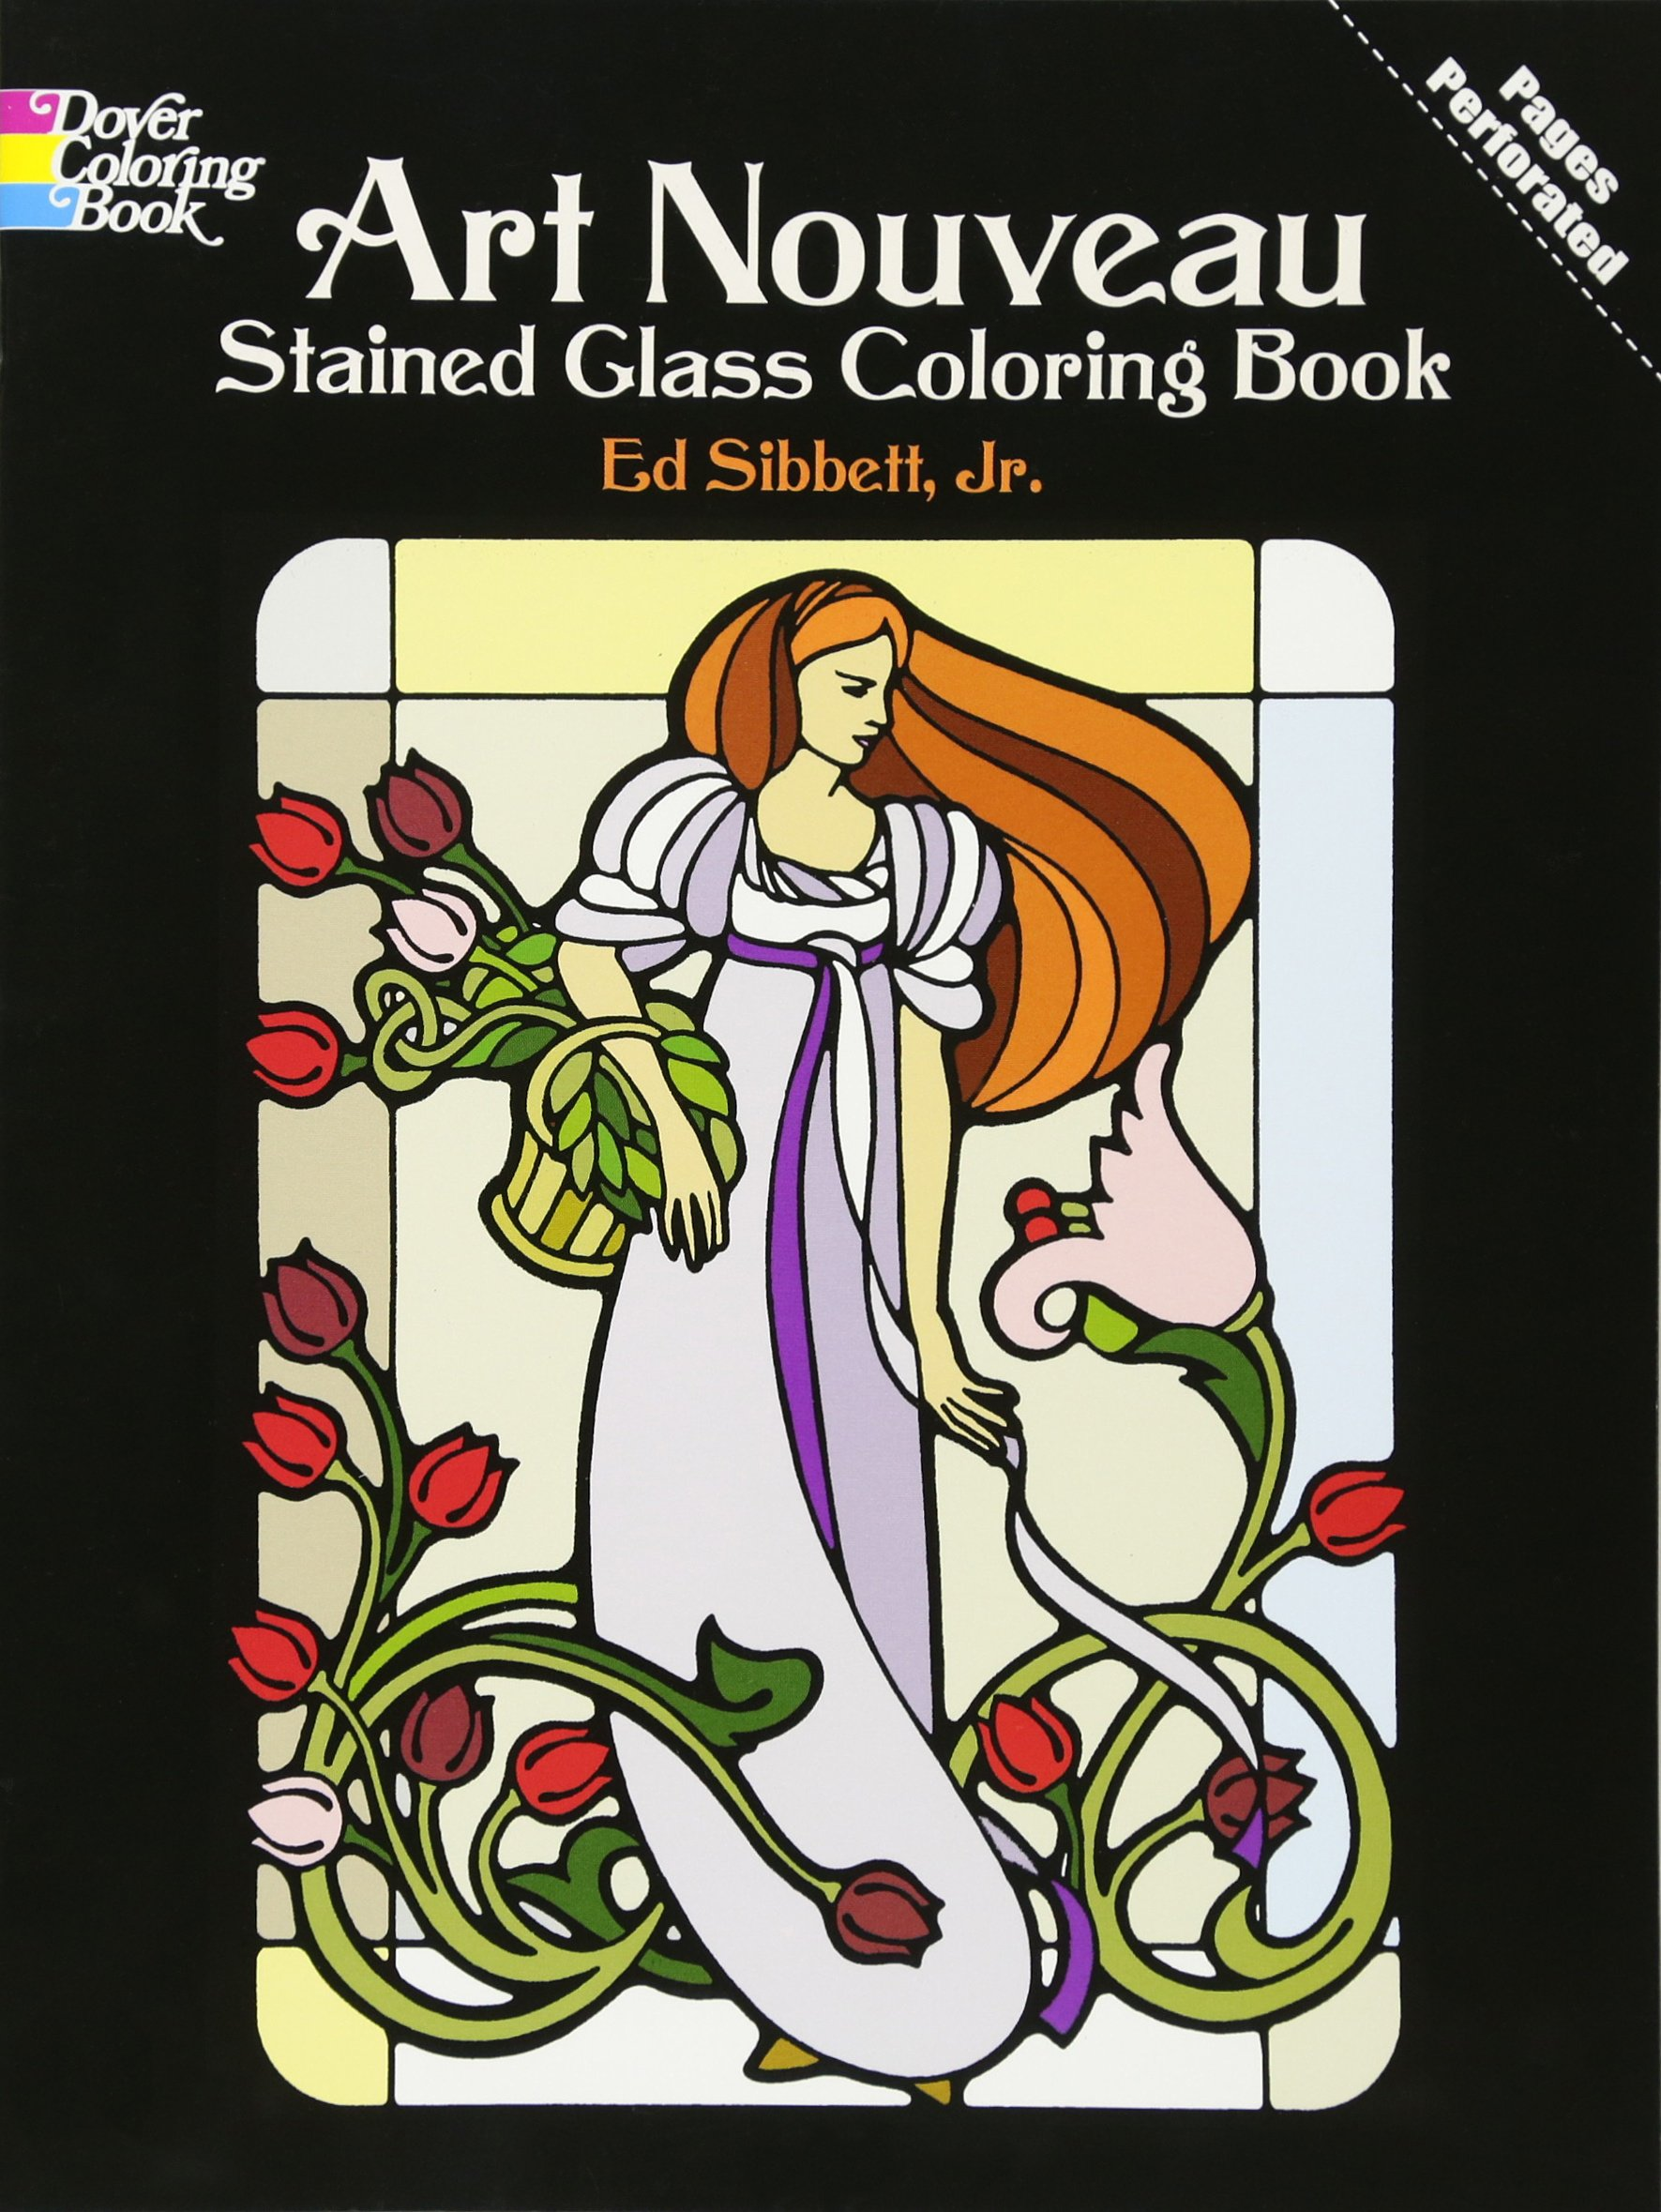 art nouveau stained glass coloring book dover design stained glass coloring book ed sibbett jr 9780486233994 amazoncom books - Stained Glass Coloring Books